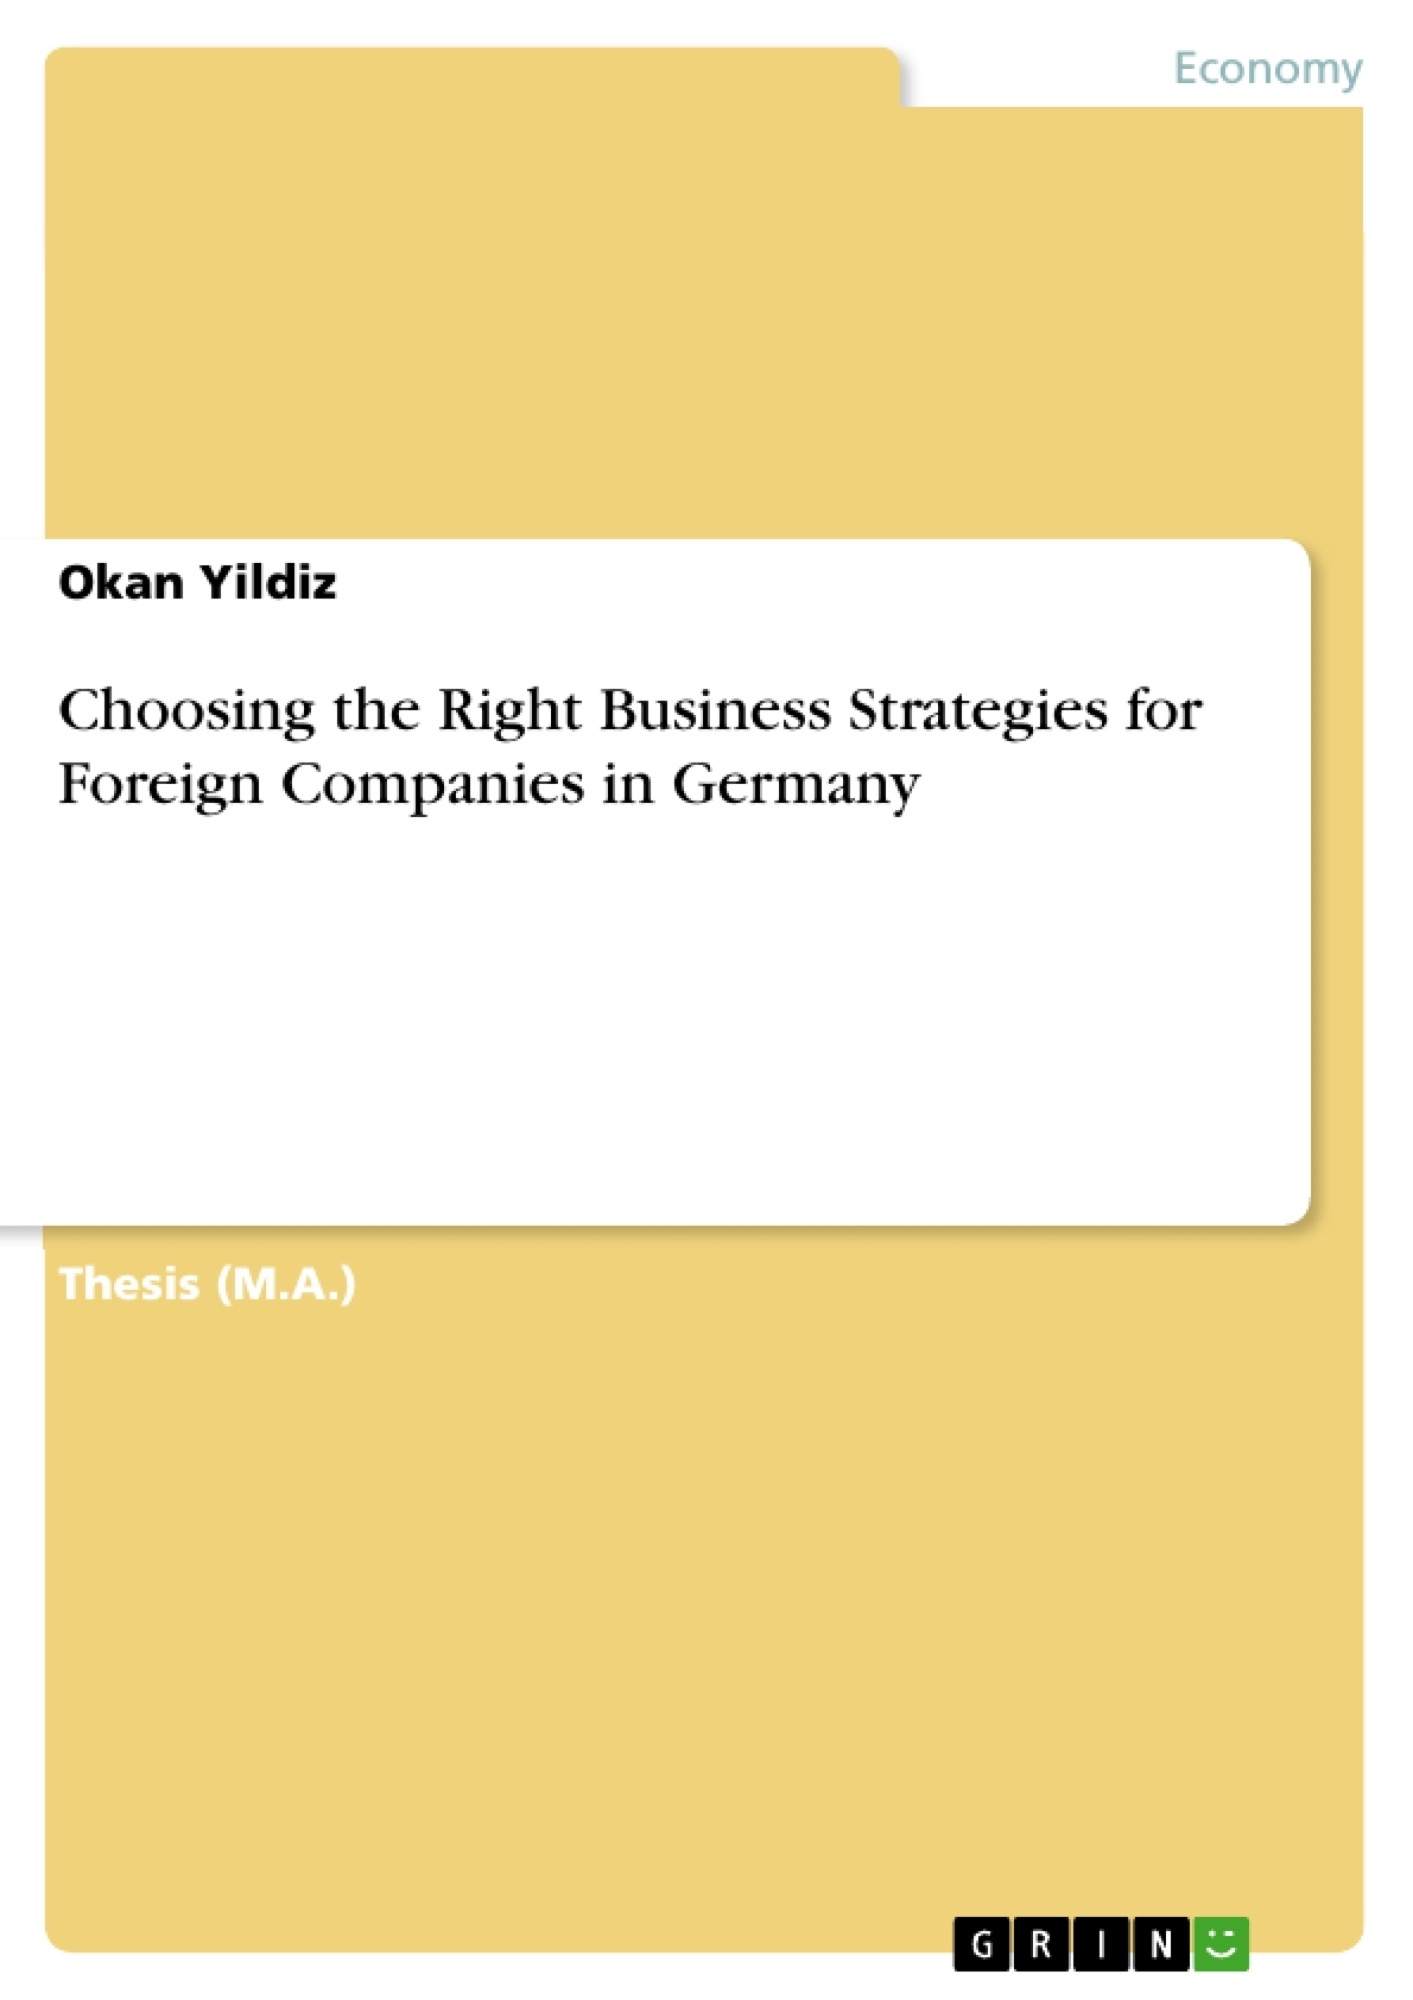 Title: Choosing the Right Business Strategies for Foreign Companies in Germany